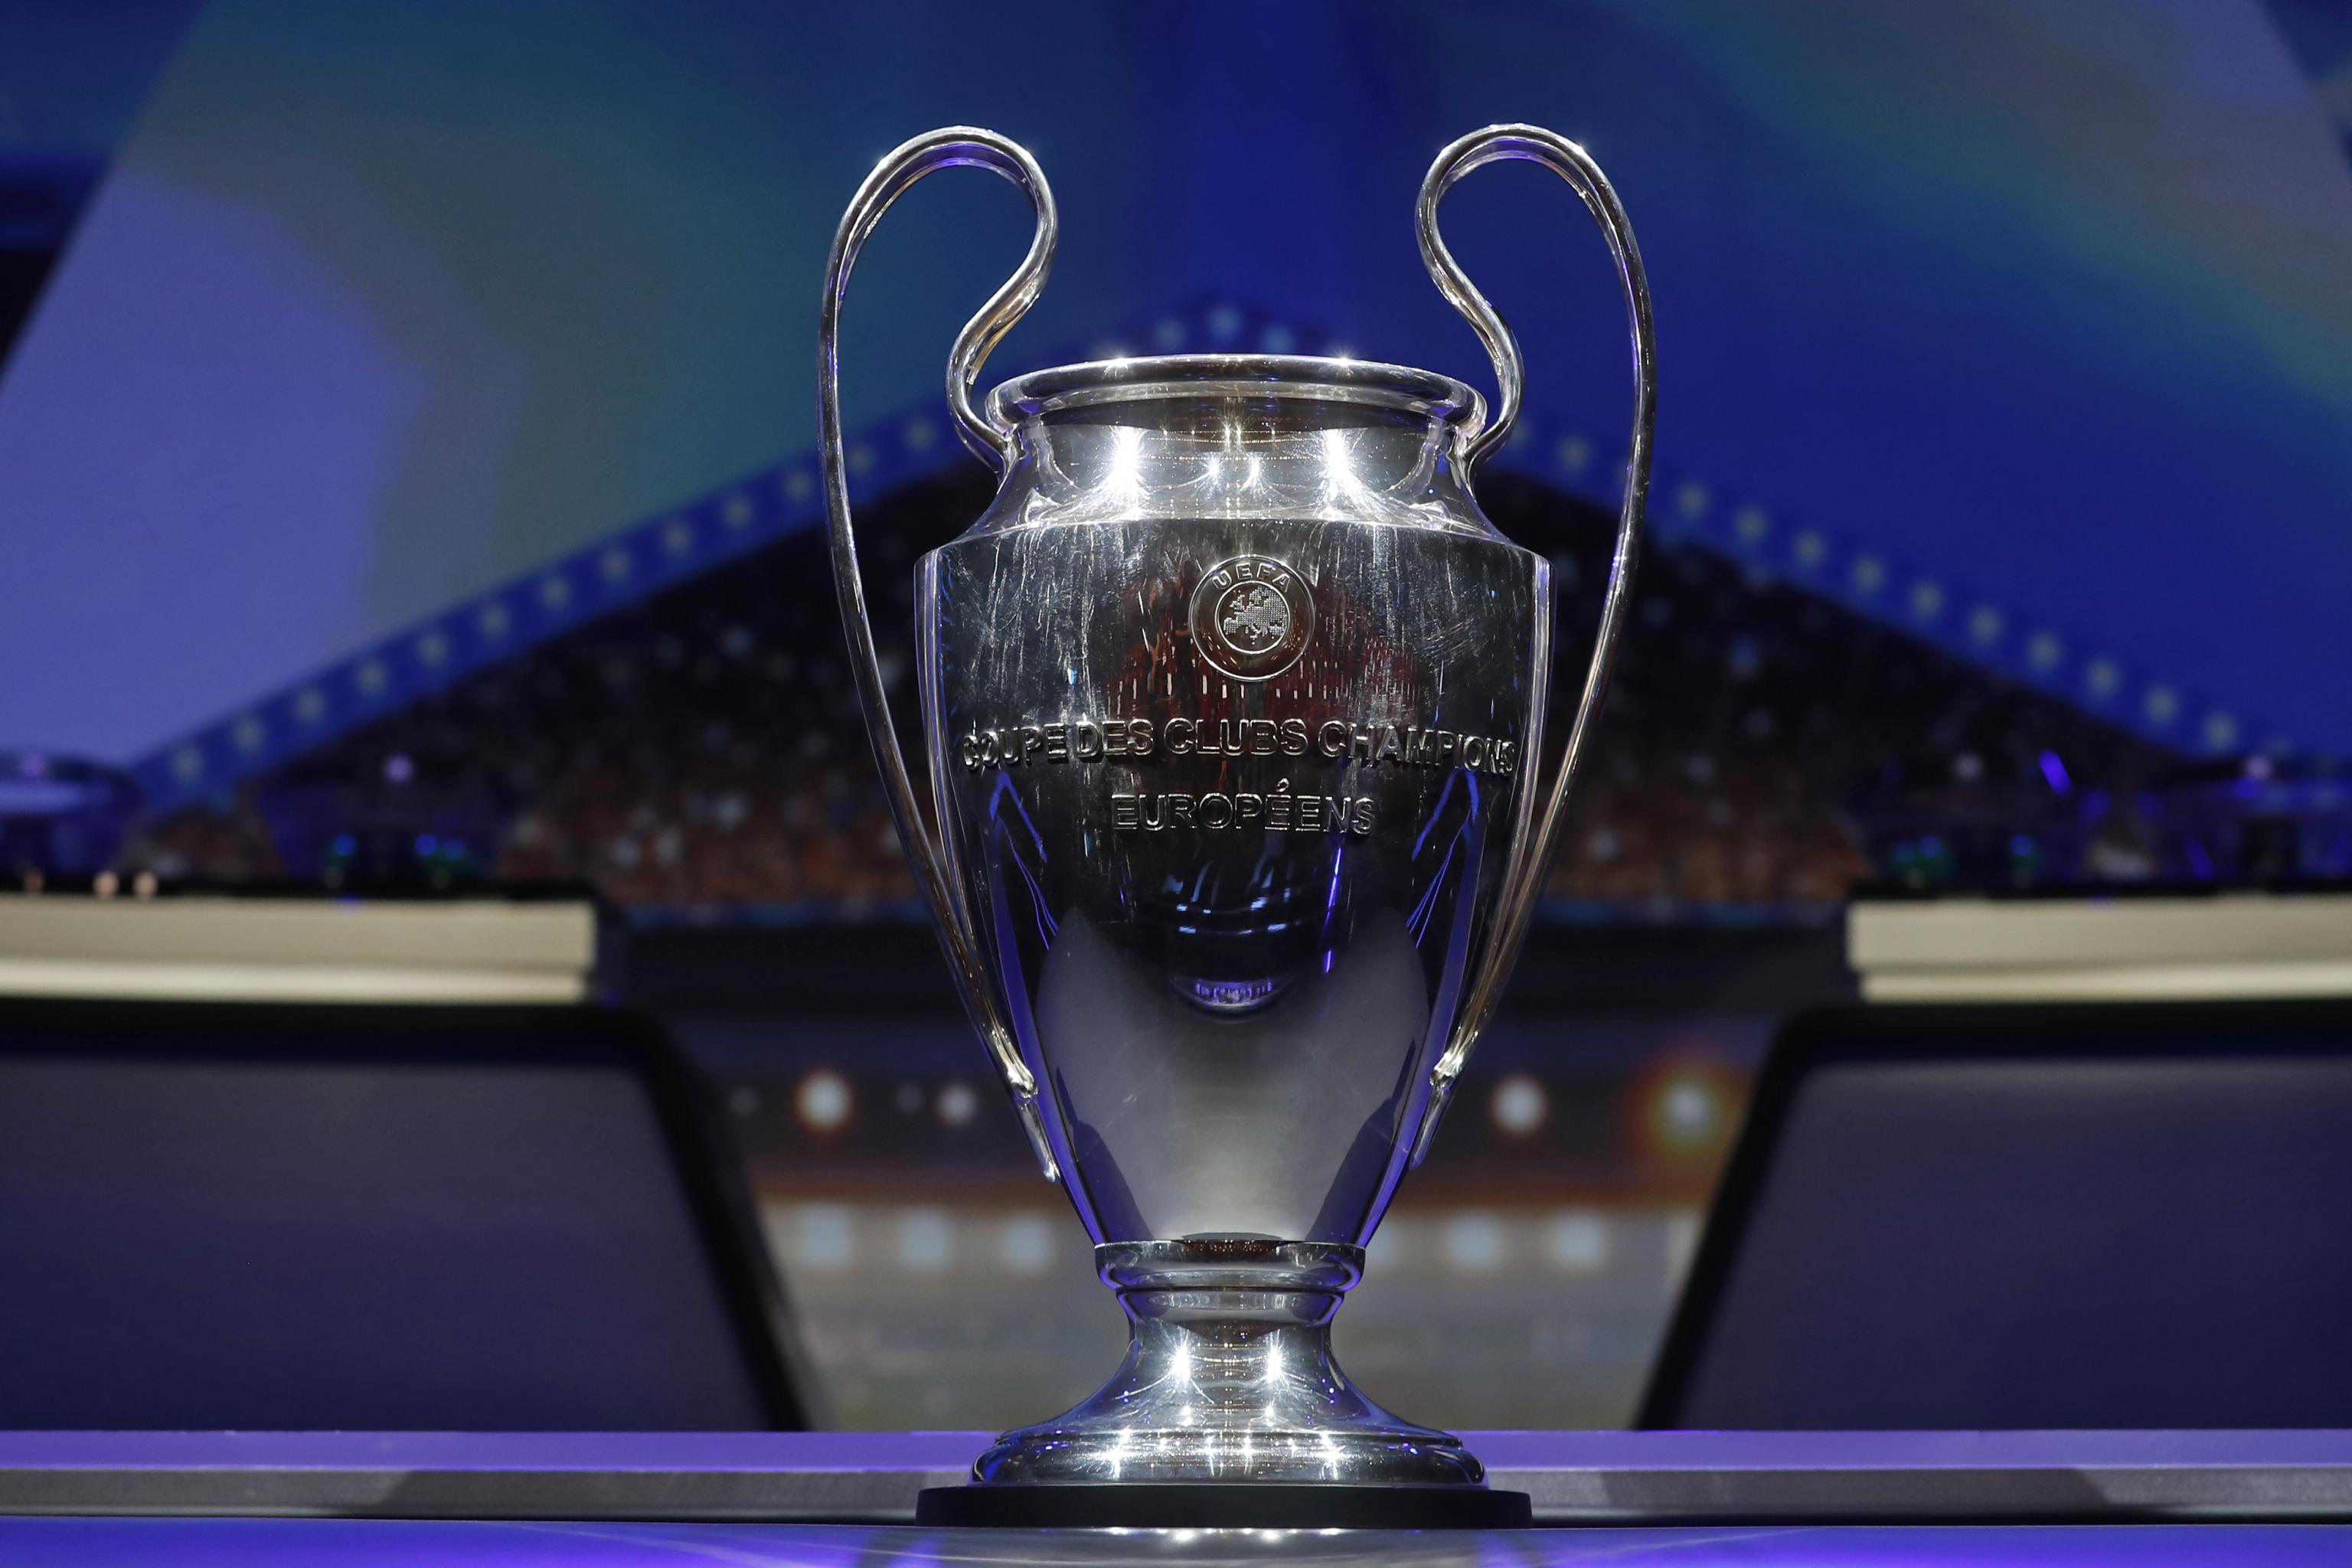 uefa announces qualification changes for champions league europa league bleacher report latest news videos and highlights for champions league europa league